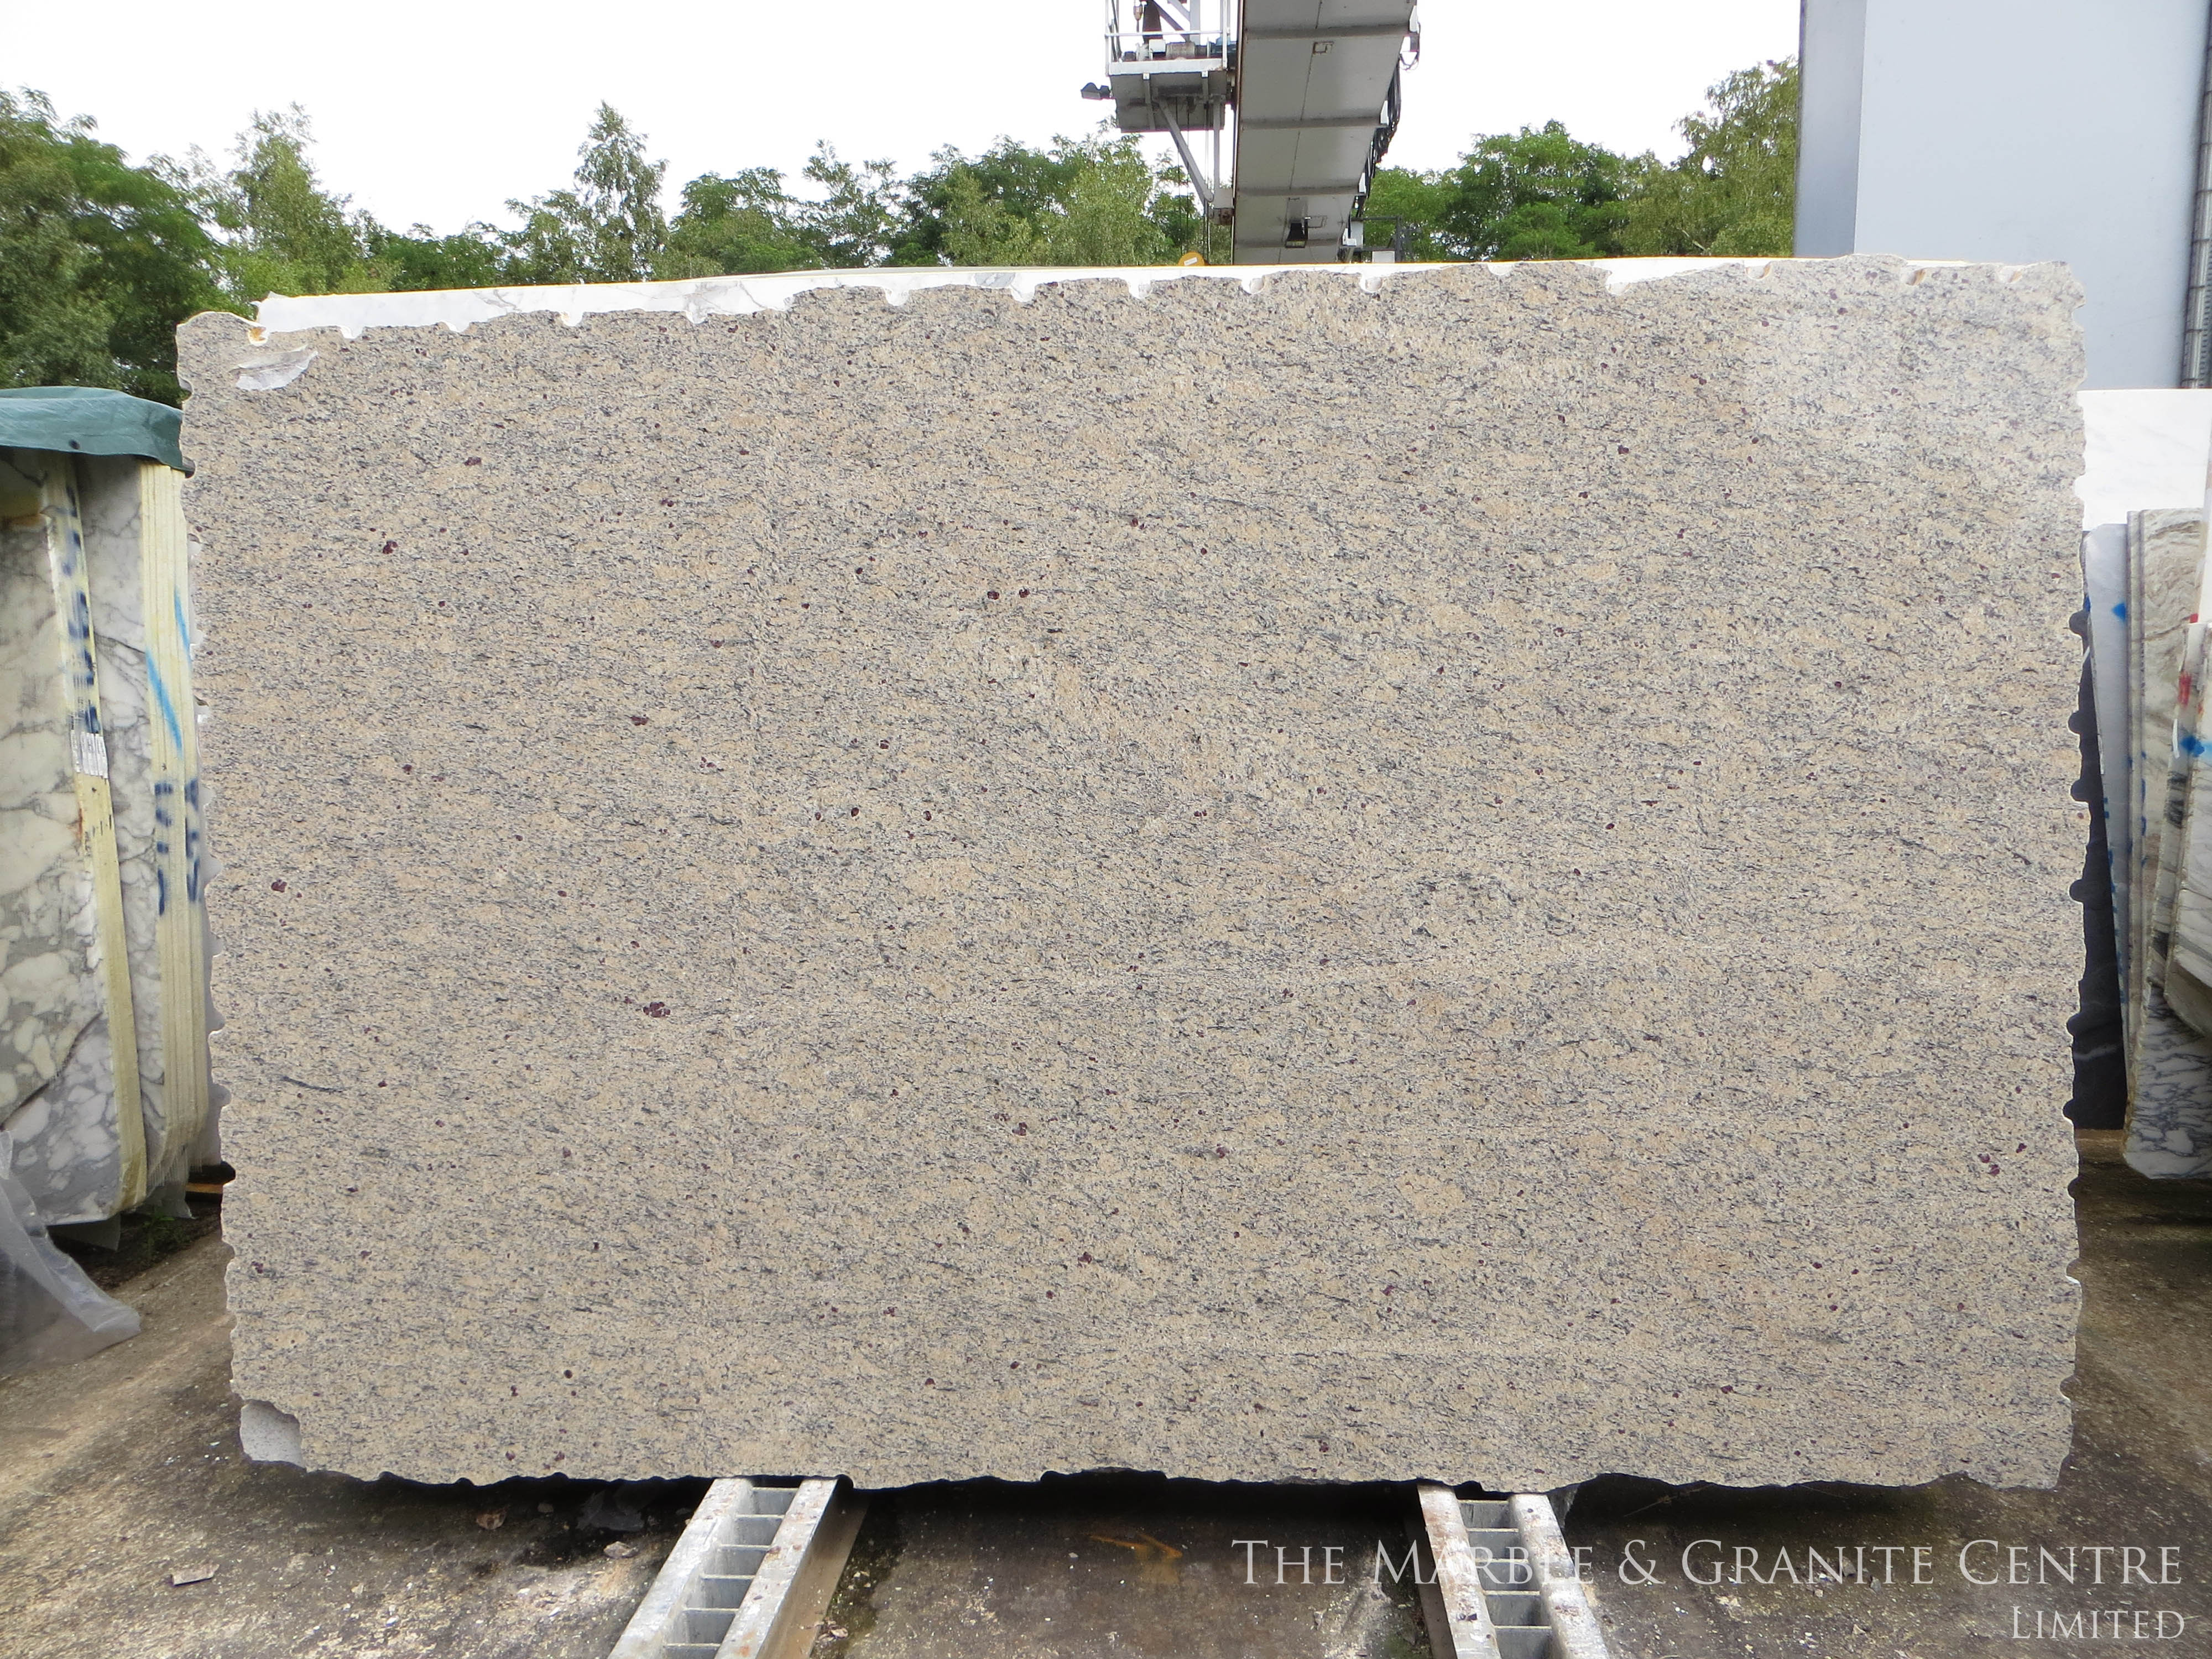 Granite Giallo SF Reale Polished 30 mm [24401]